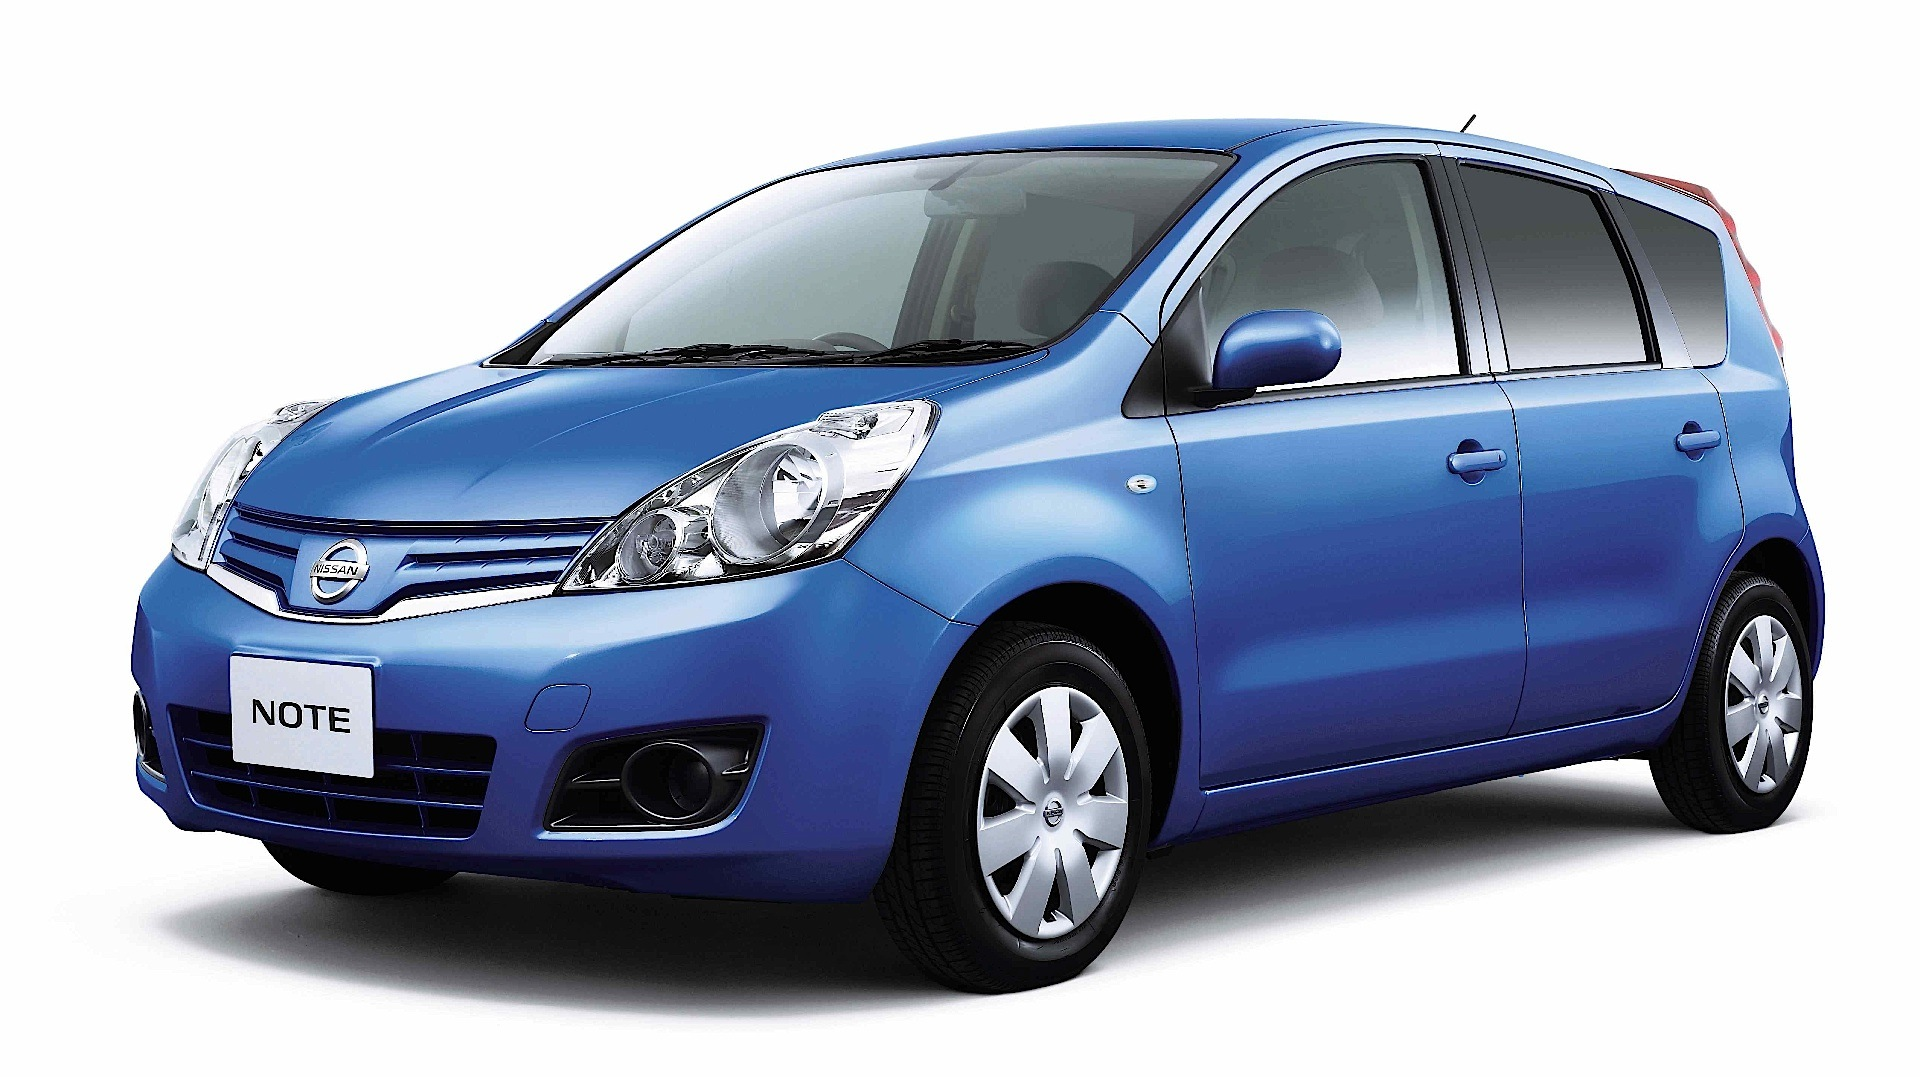 Nissan note photo - 7